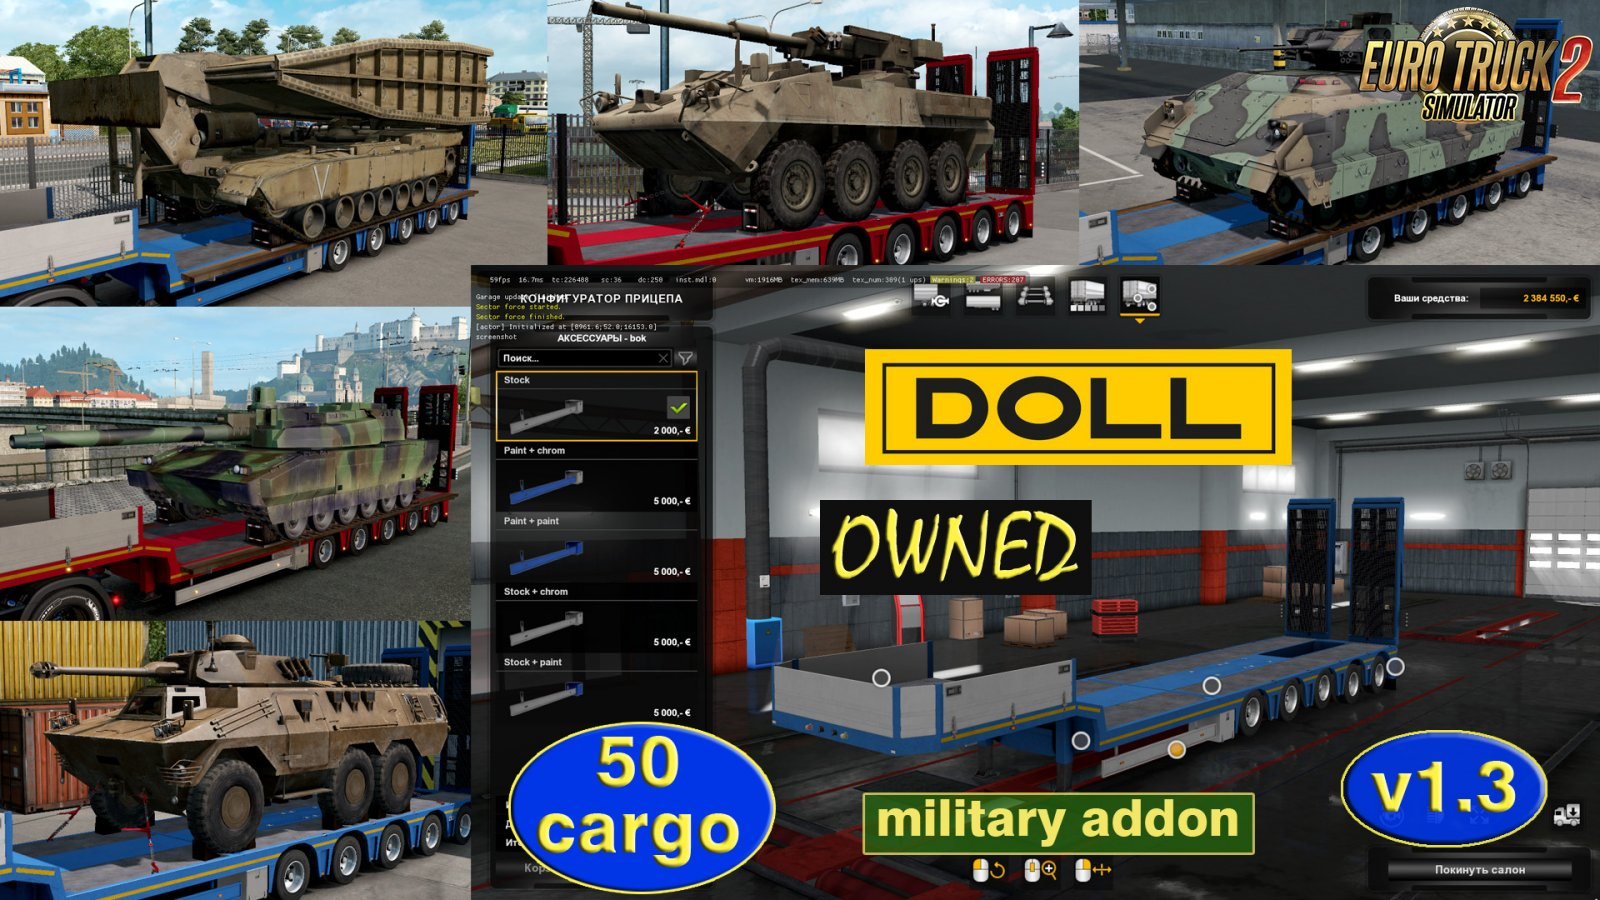 Military addon for Doll Panther v1.3 by Jazzycat